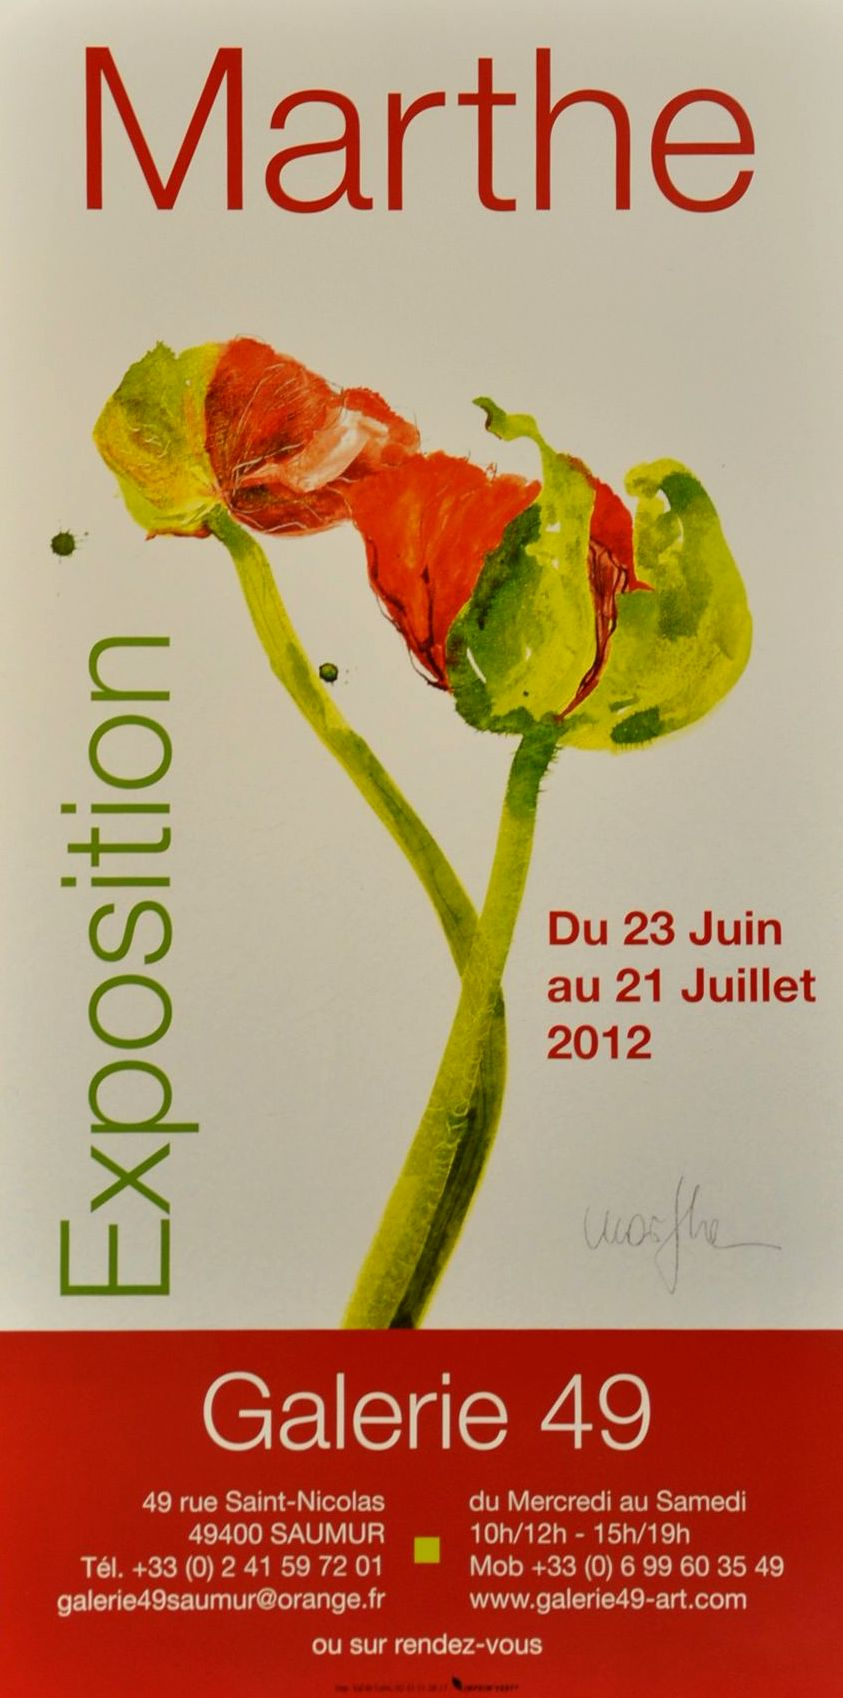 Exposition Marthe 2012 Galerie Toulouse Lauwers